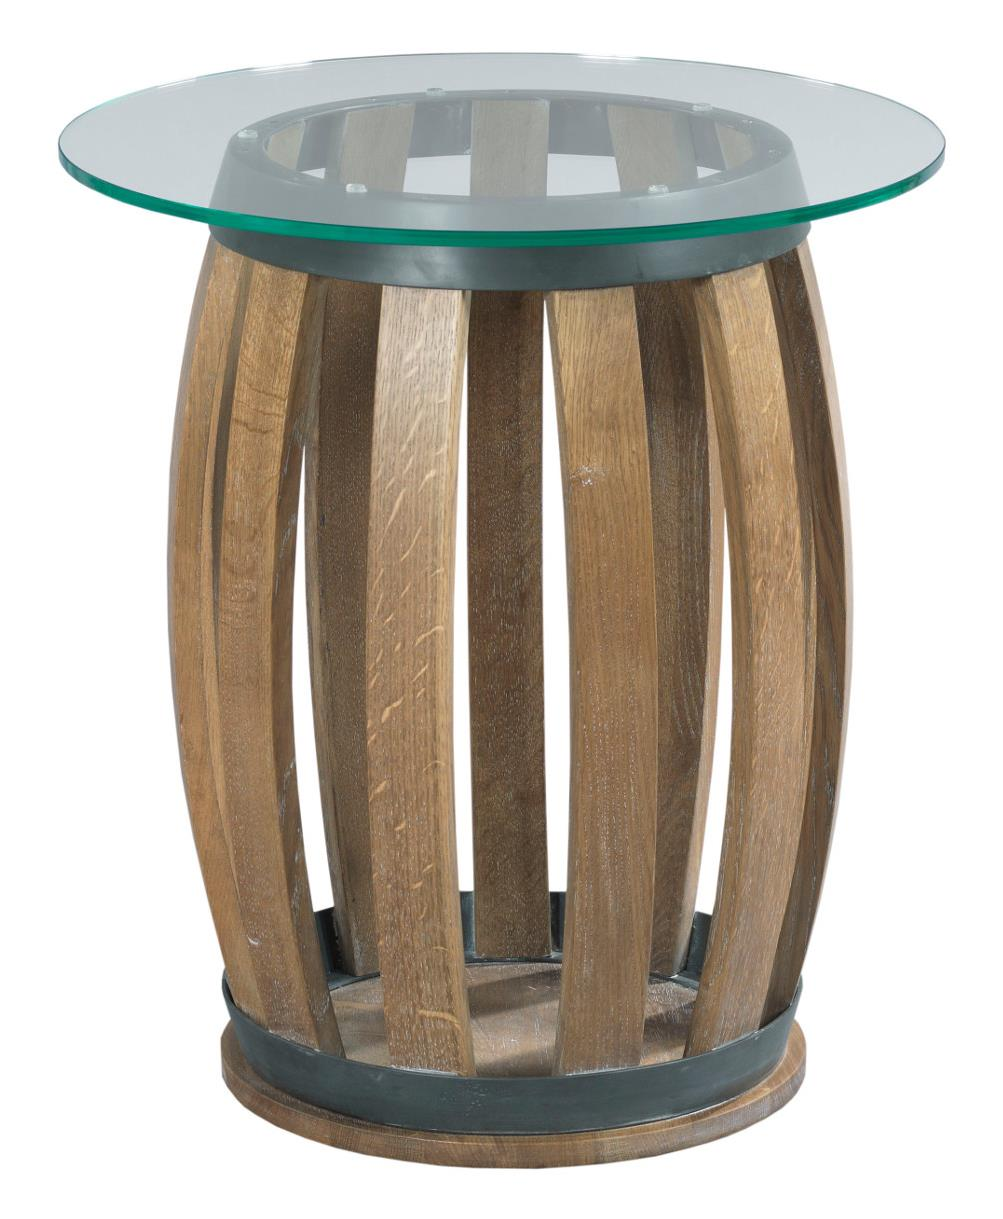 rustic wine barrel accent table with tempered glass top kincaid products furniture color stone ridge round wolf and gardiner blue white porcelain lamps next chesterfield sofa